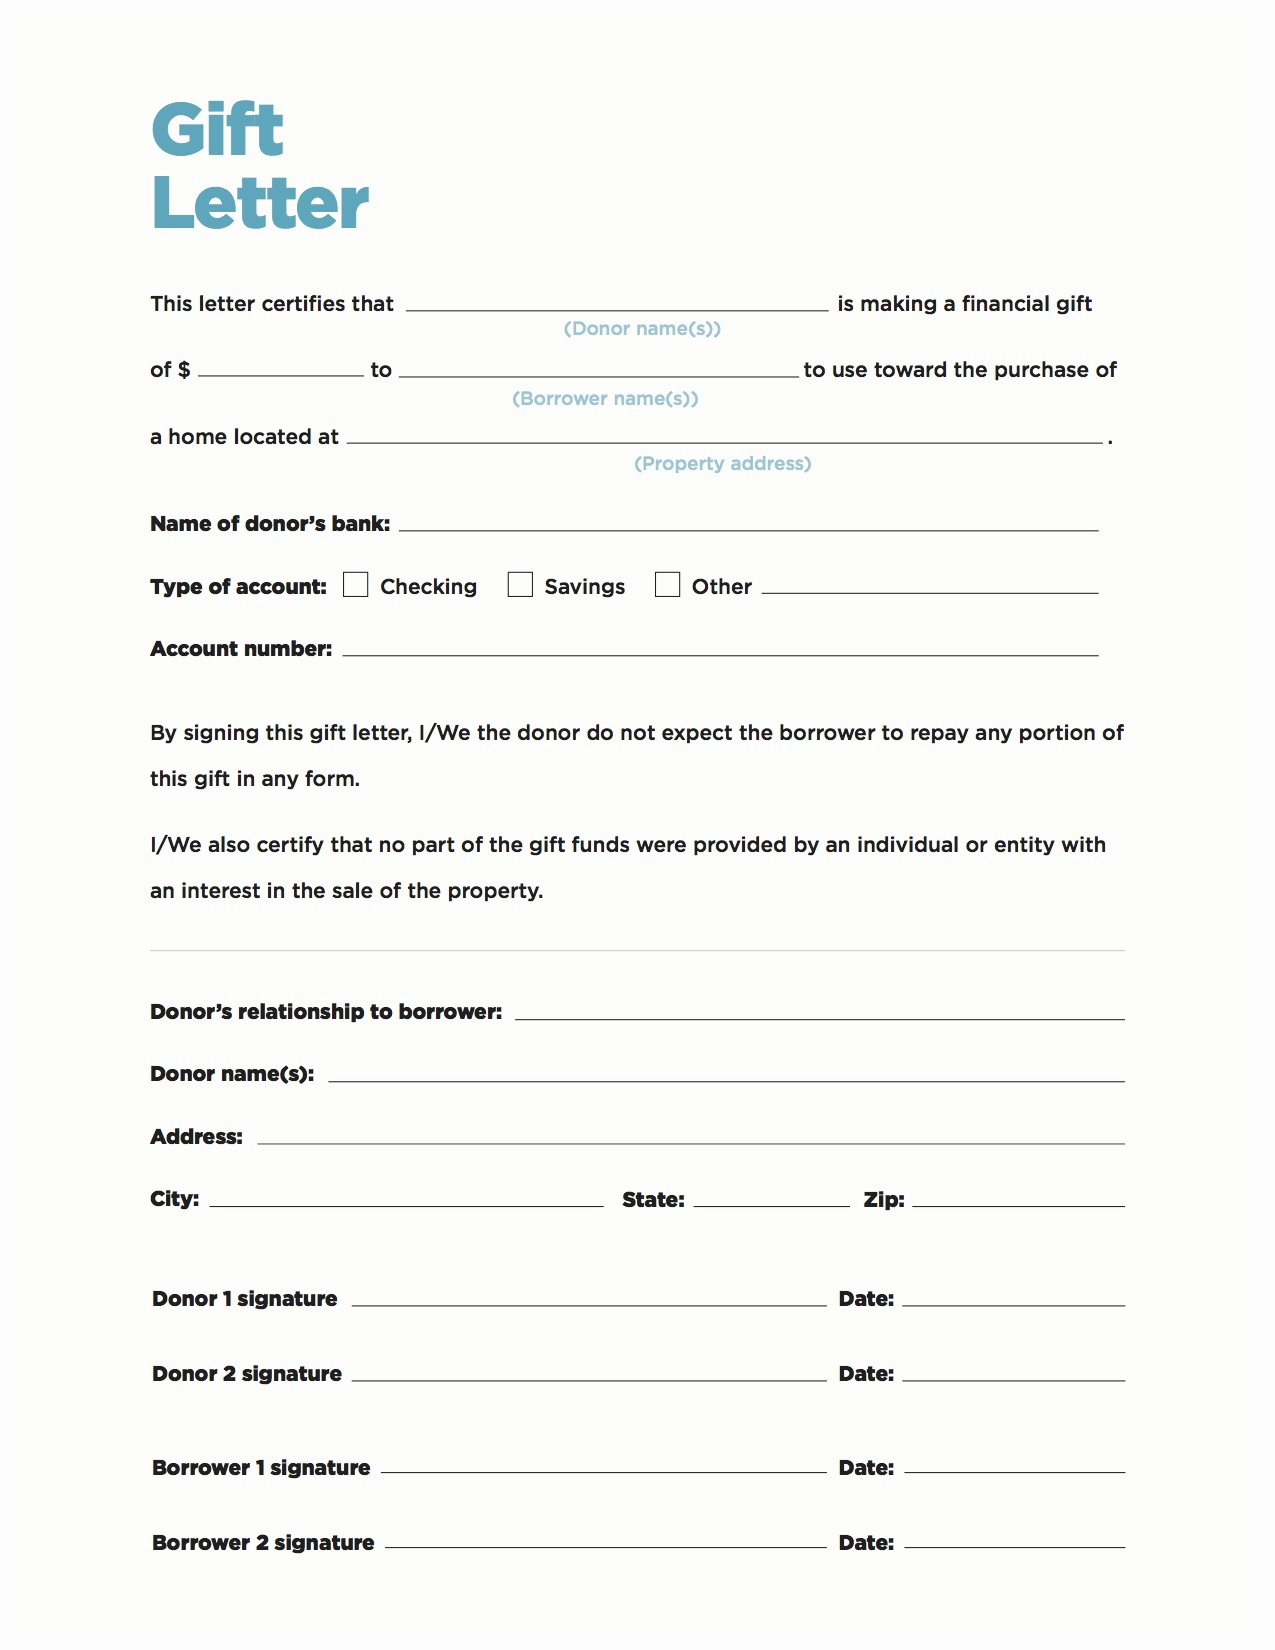 Mortgage Gift Letter Template Fresh Gift Money Can Meet Your Down Payment Needs Nerdwallet